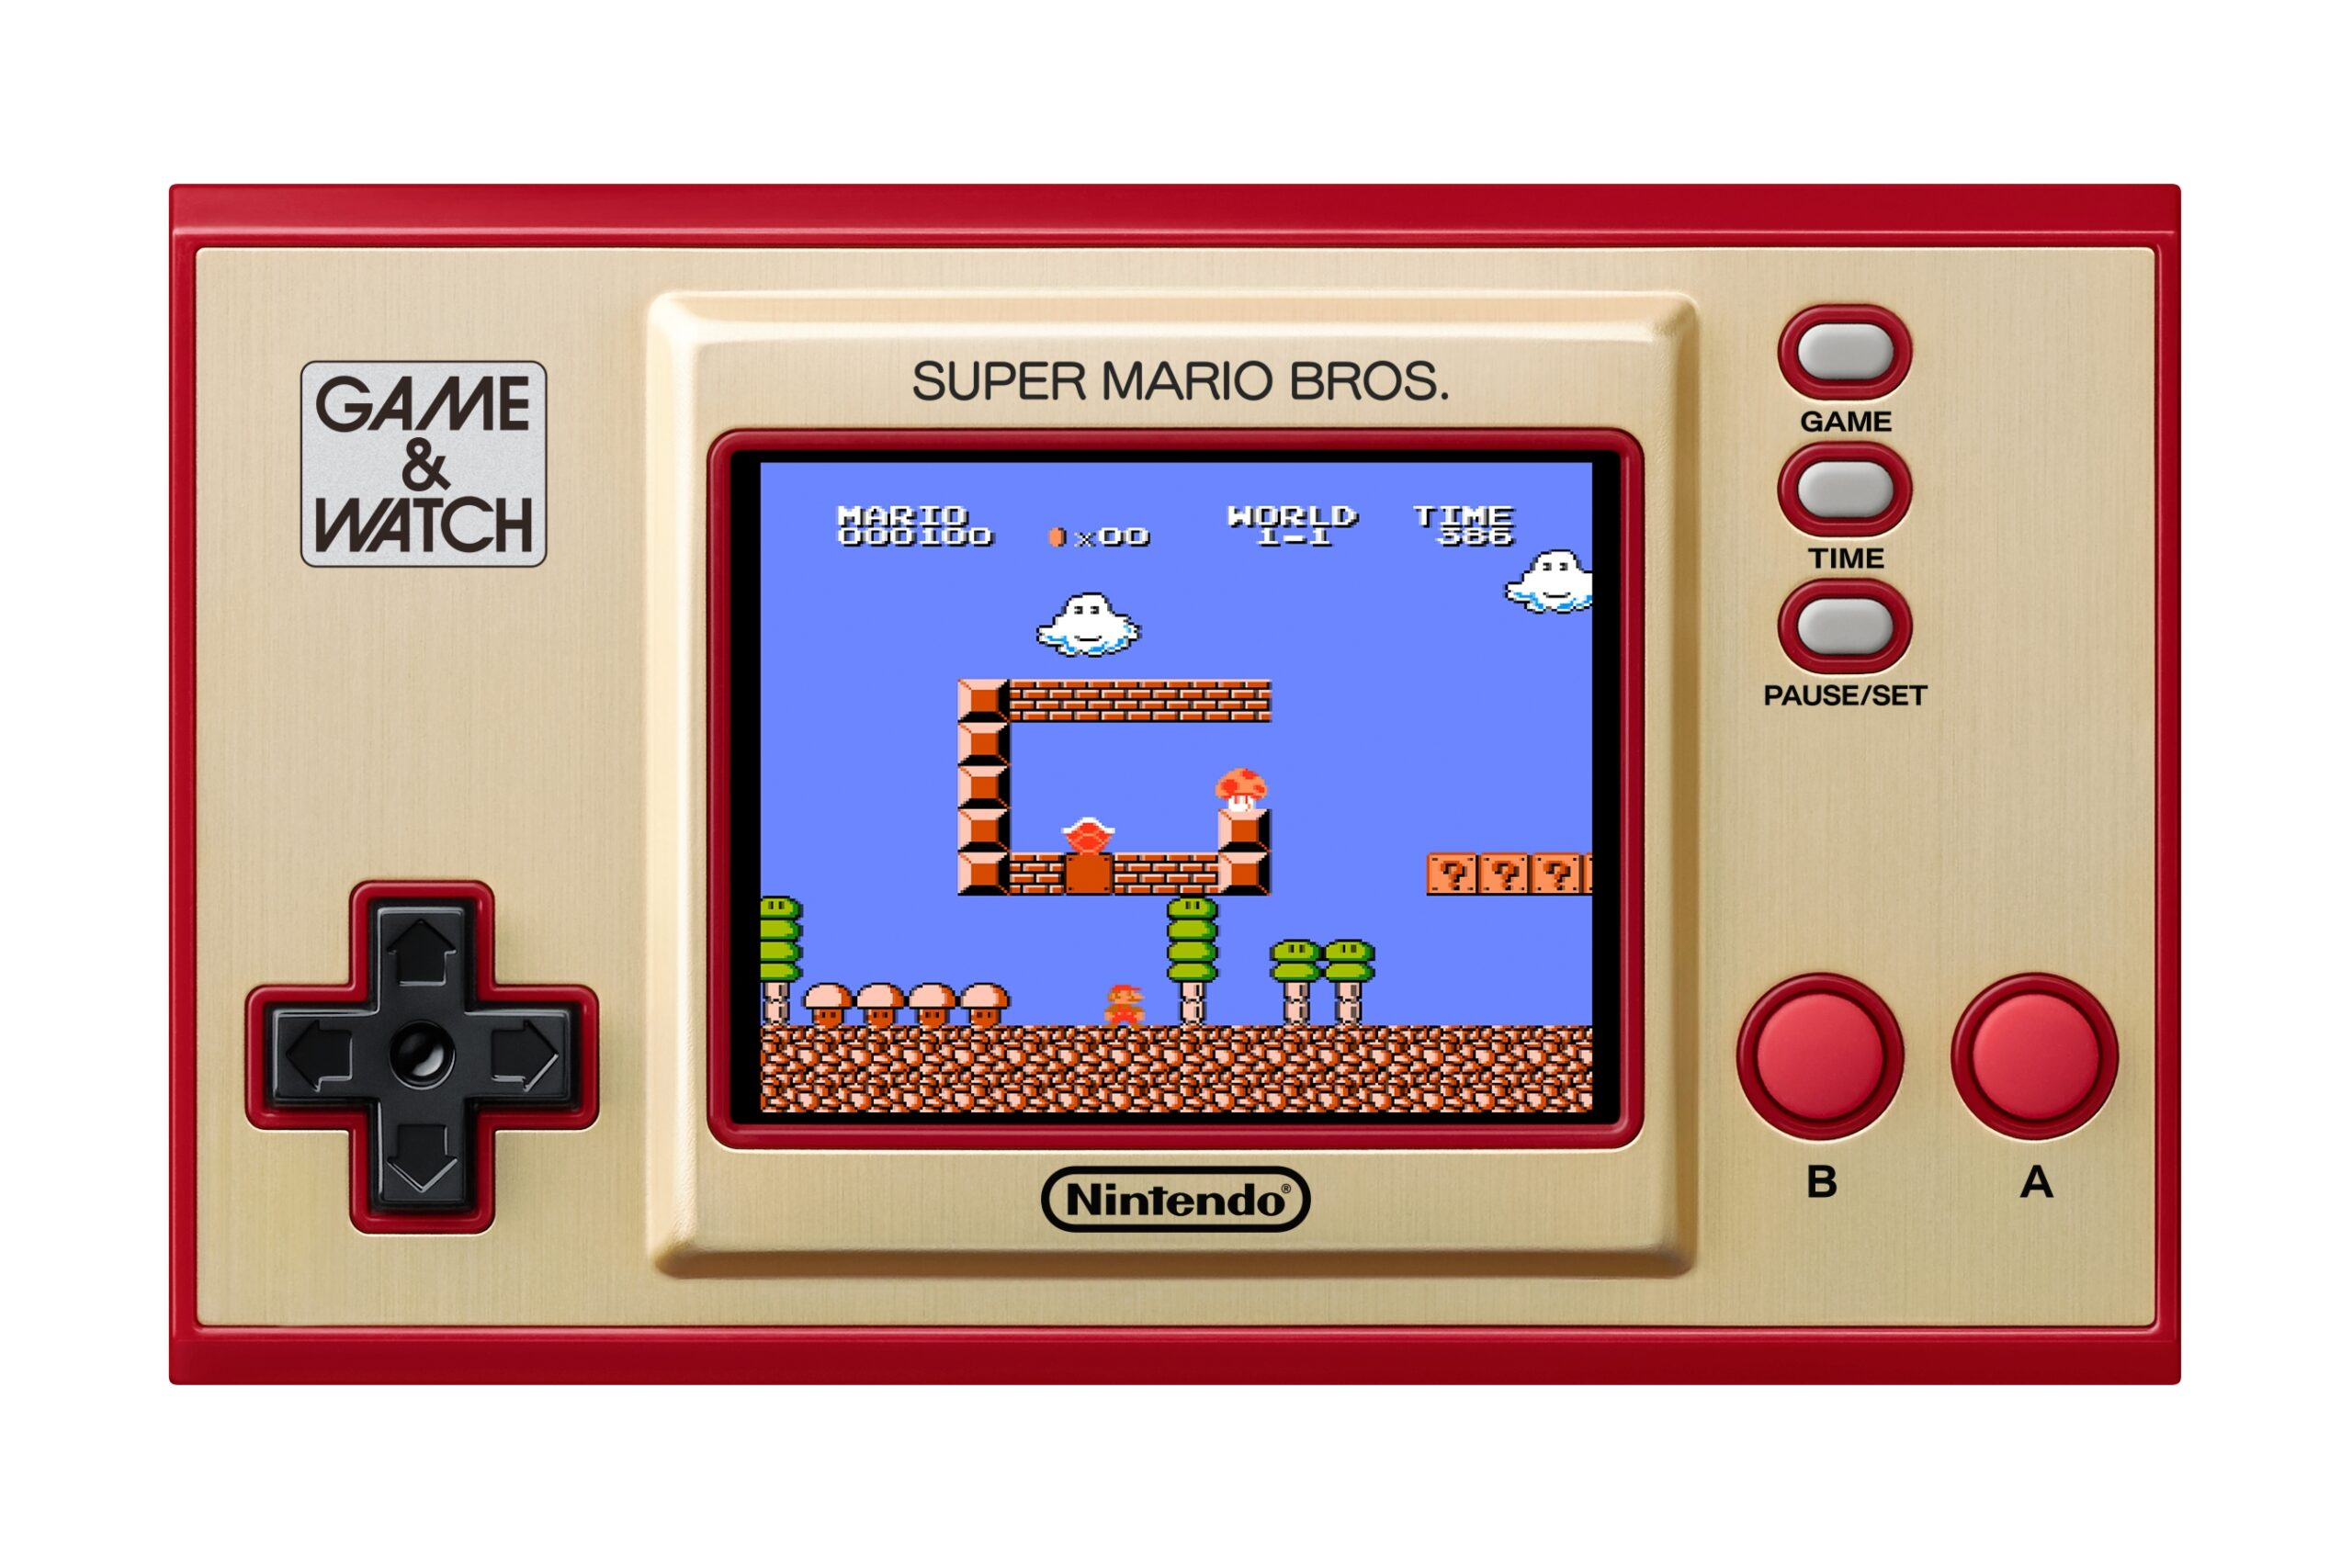 Game-and-Watch-Super-Mario-Bros_2020_09-03-20_012